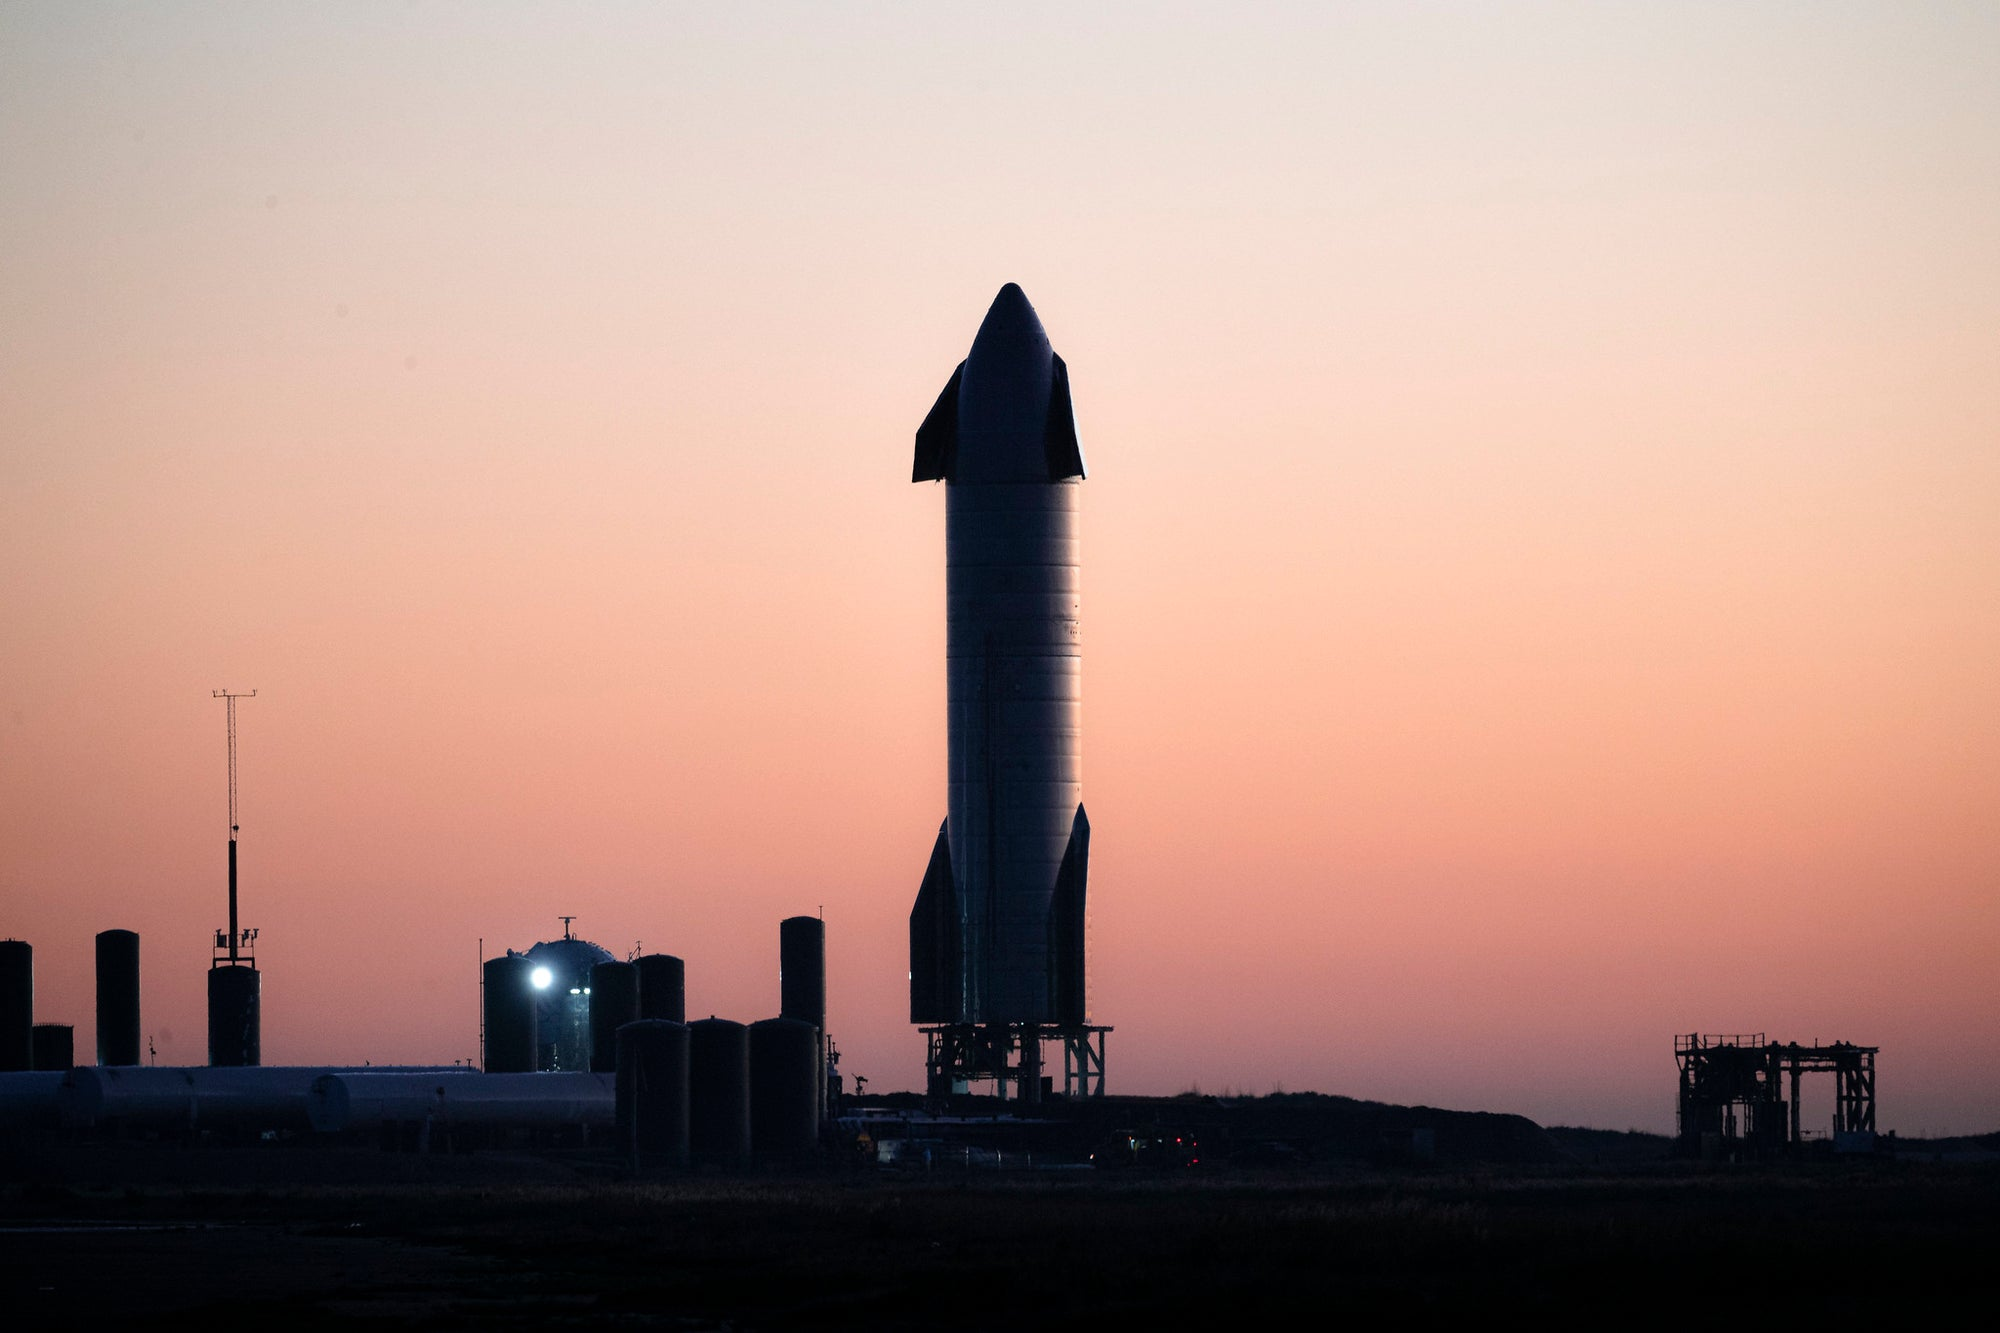 Report states SpaceX plans to drill natural-gas at the South Texas Starship Launch Facility